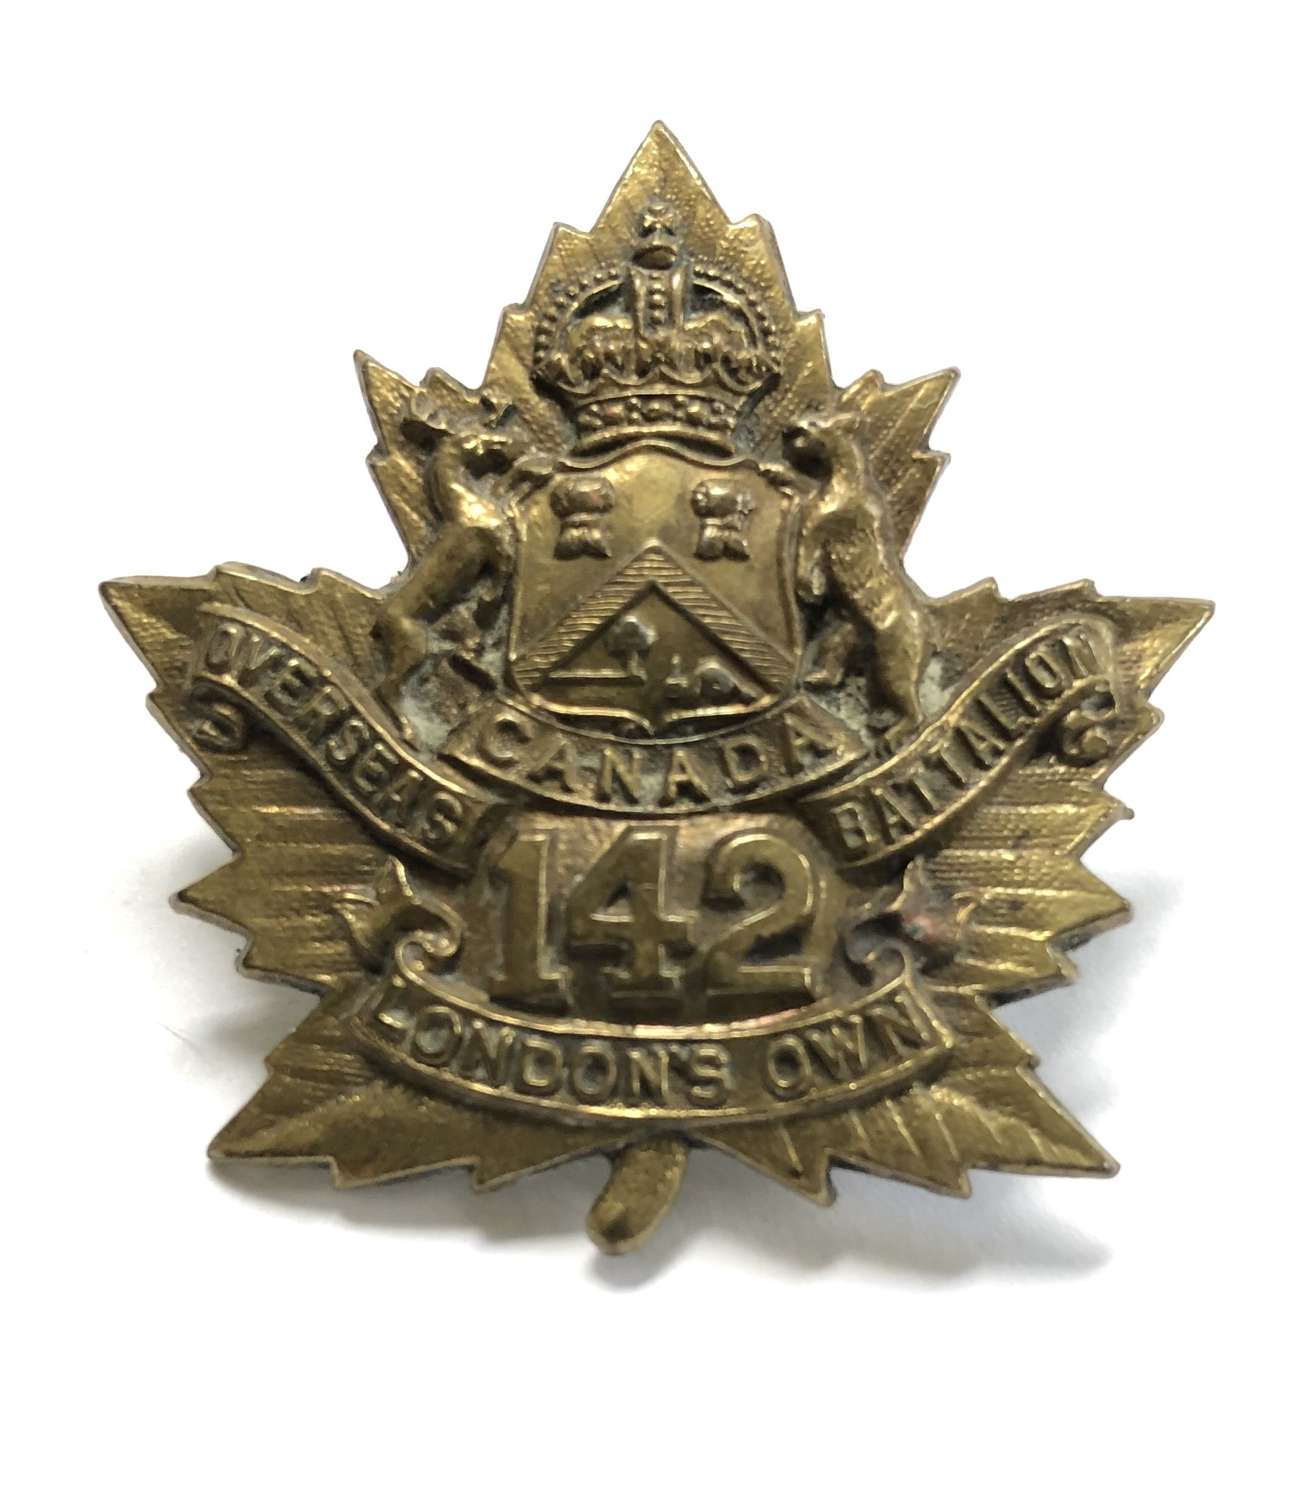 Canada. 142nd (London's Own) Bn. WW1 CEF cap badge